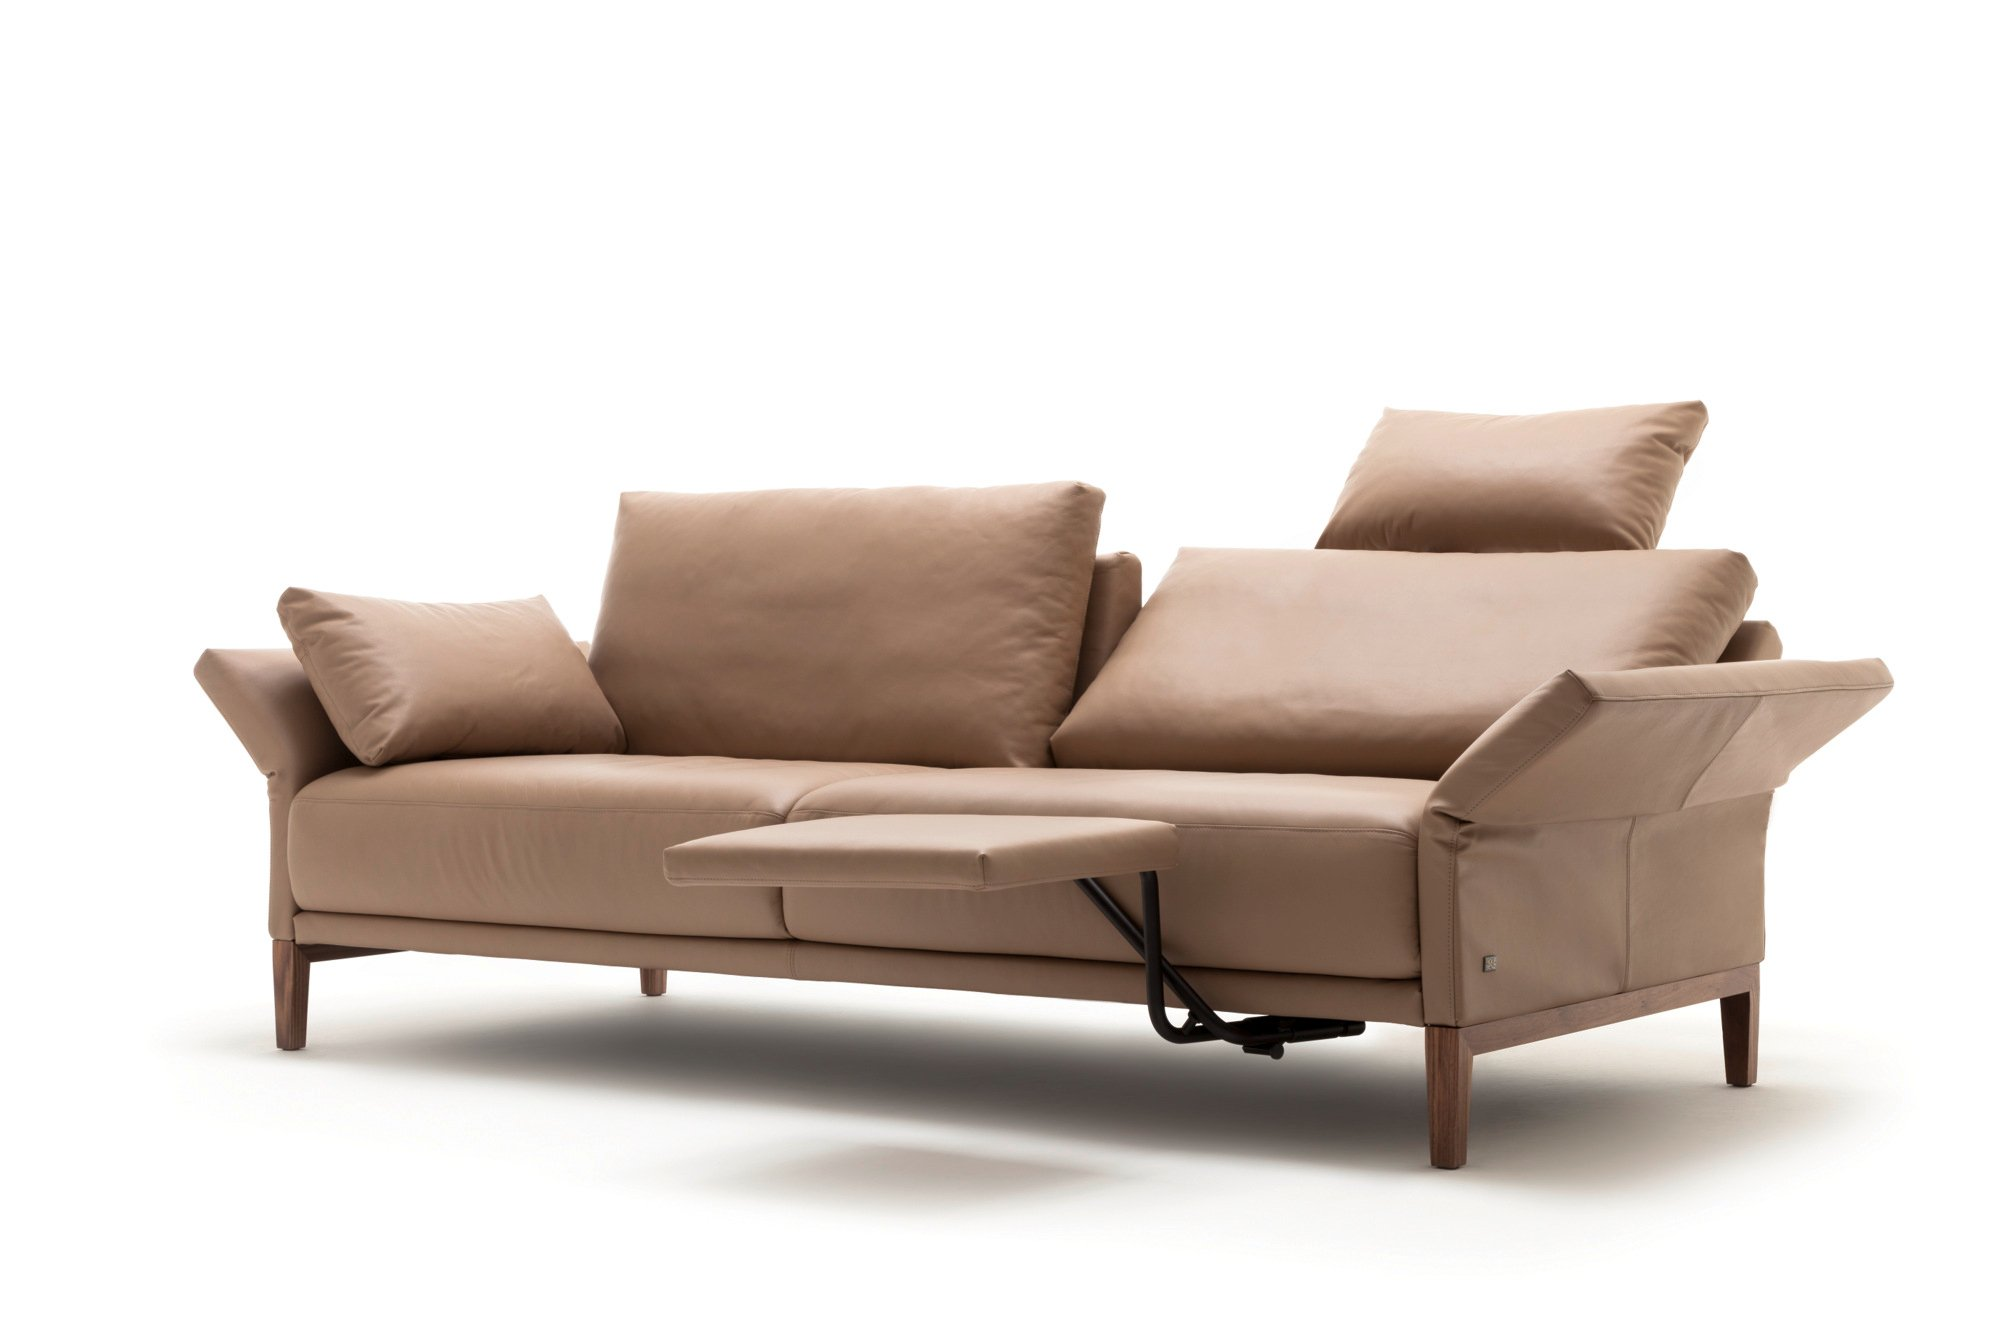 Rolf Benz Sofa Rolf Benz 50 Leather Sofa By Rolf Benz Design Norbert Beck Sofa Rolf Benz